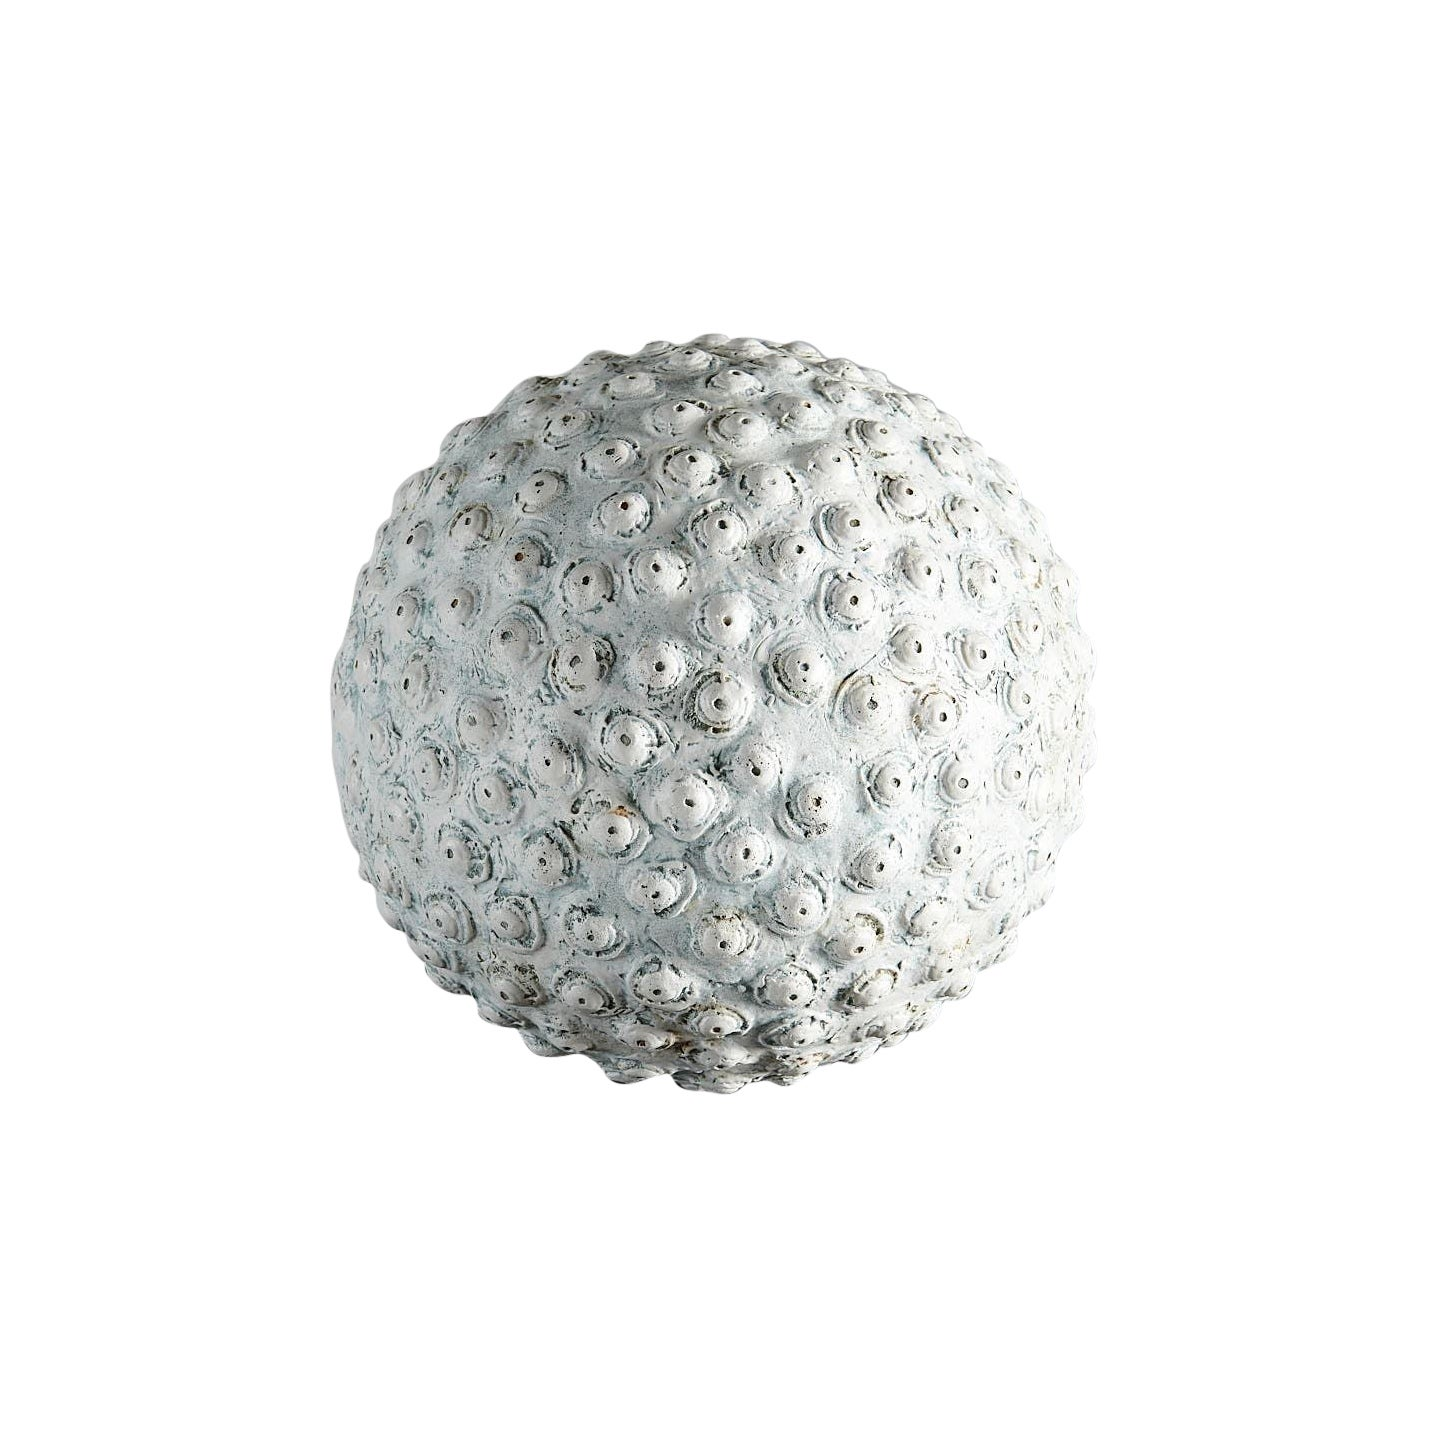 Barbro Åberg 'Orb,' Contemporary Stoneware Sculpture, Denmark, 2019